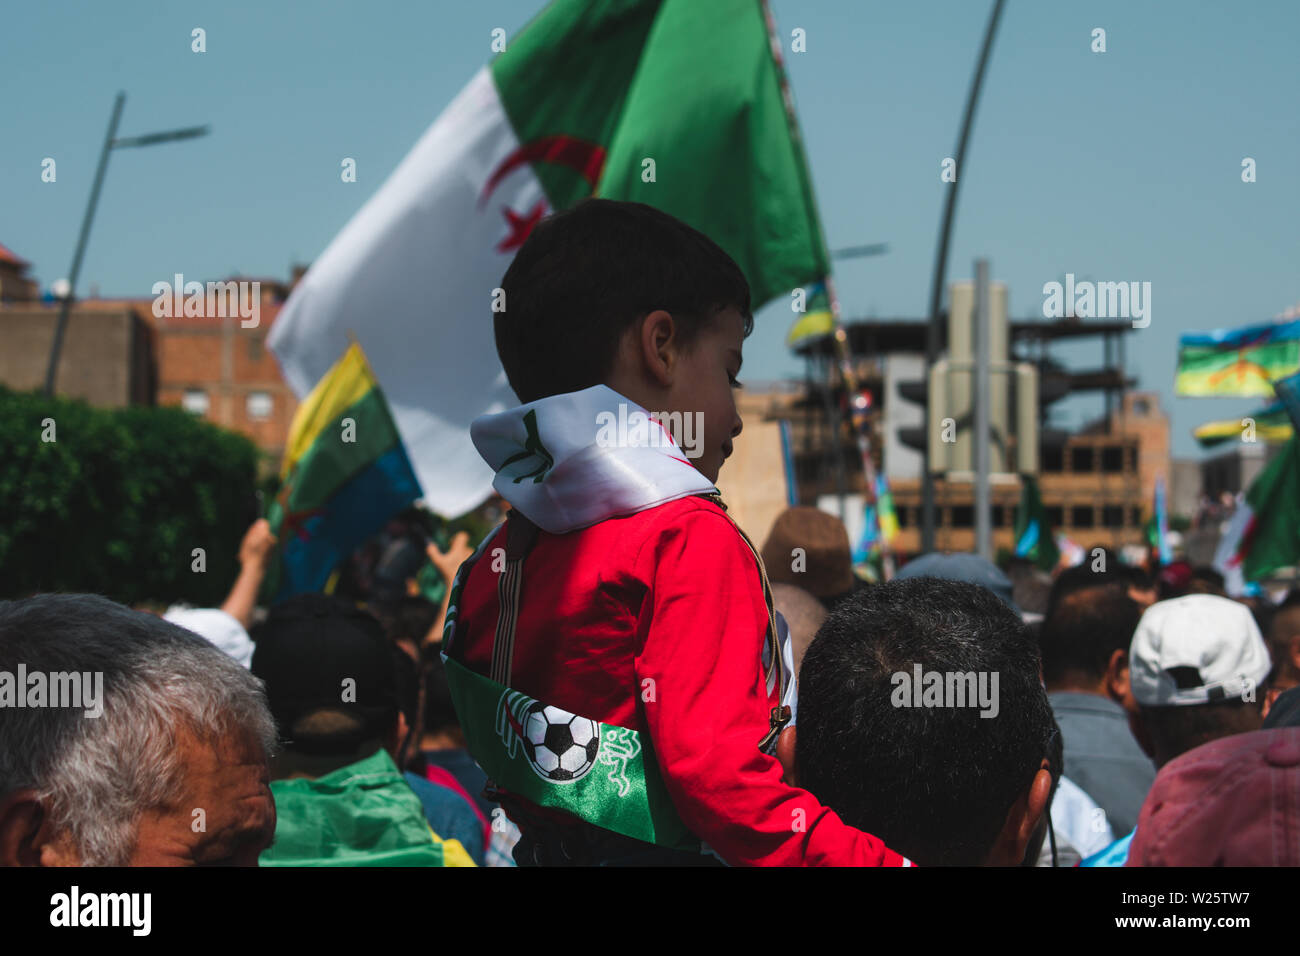 Bejaia, Algeria - 06/21/2019: Manifestation against Gaid Salah after  his last speech about forbidding the Amazigh emblem in protests. Stock Photo